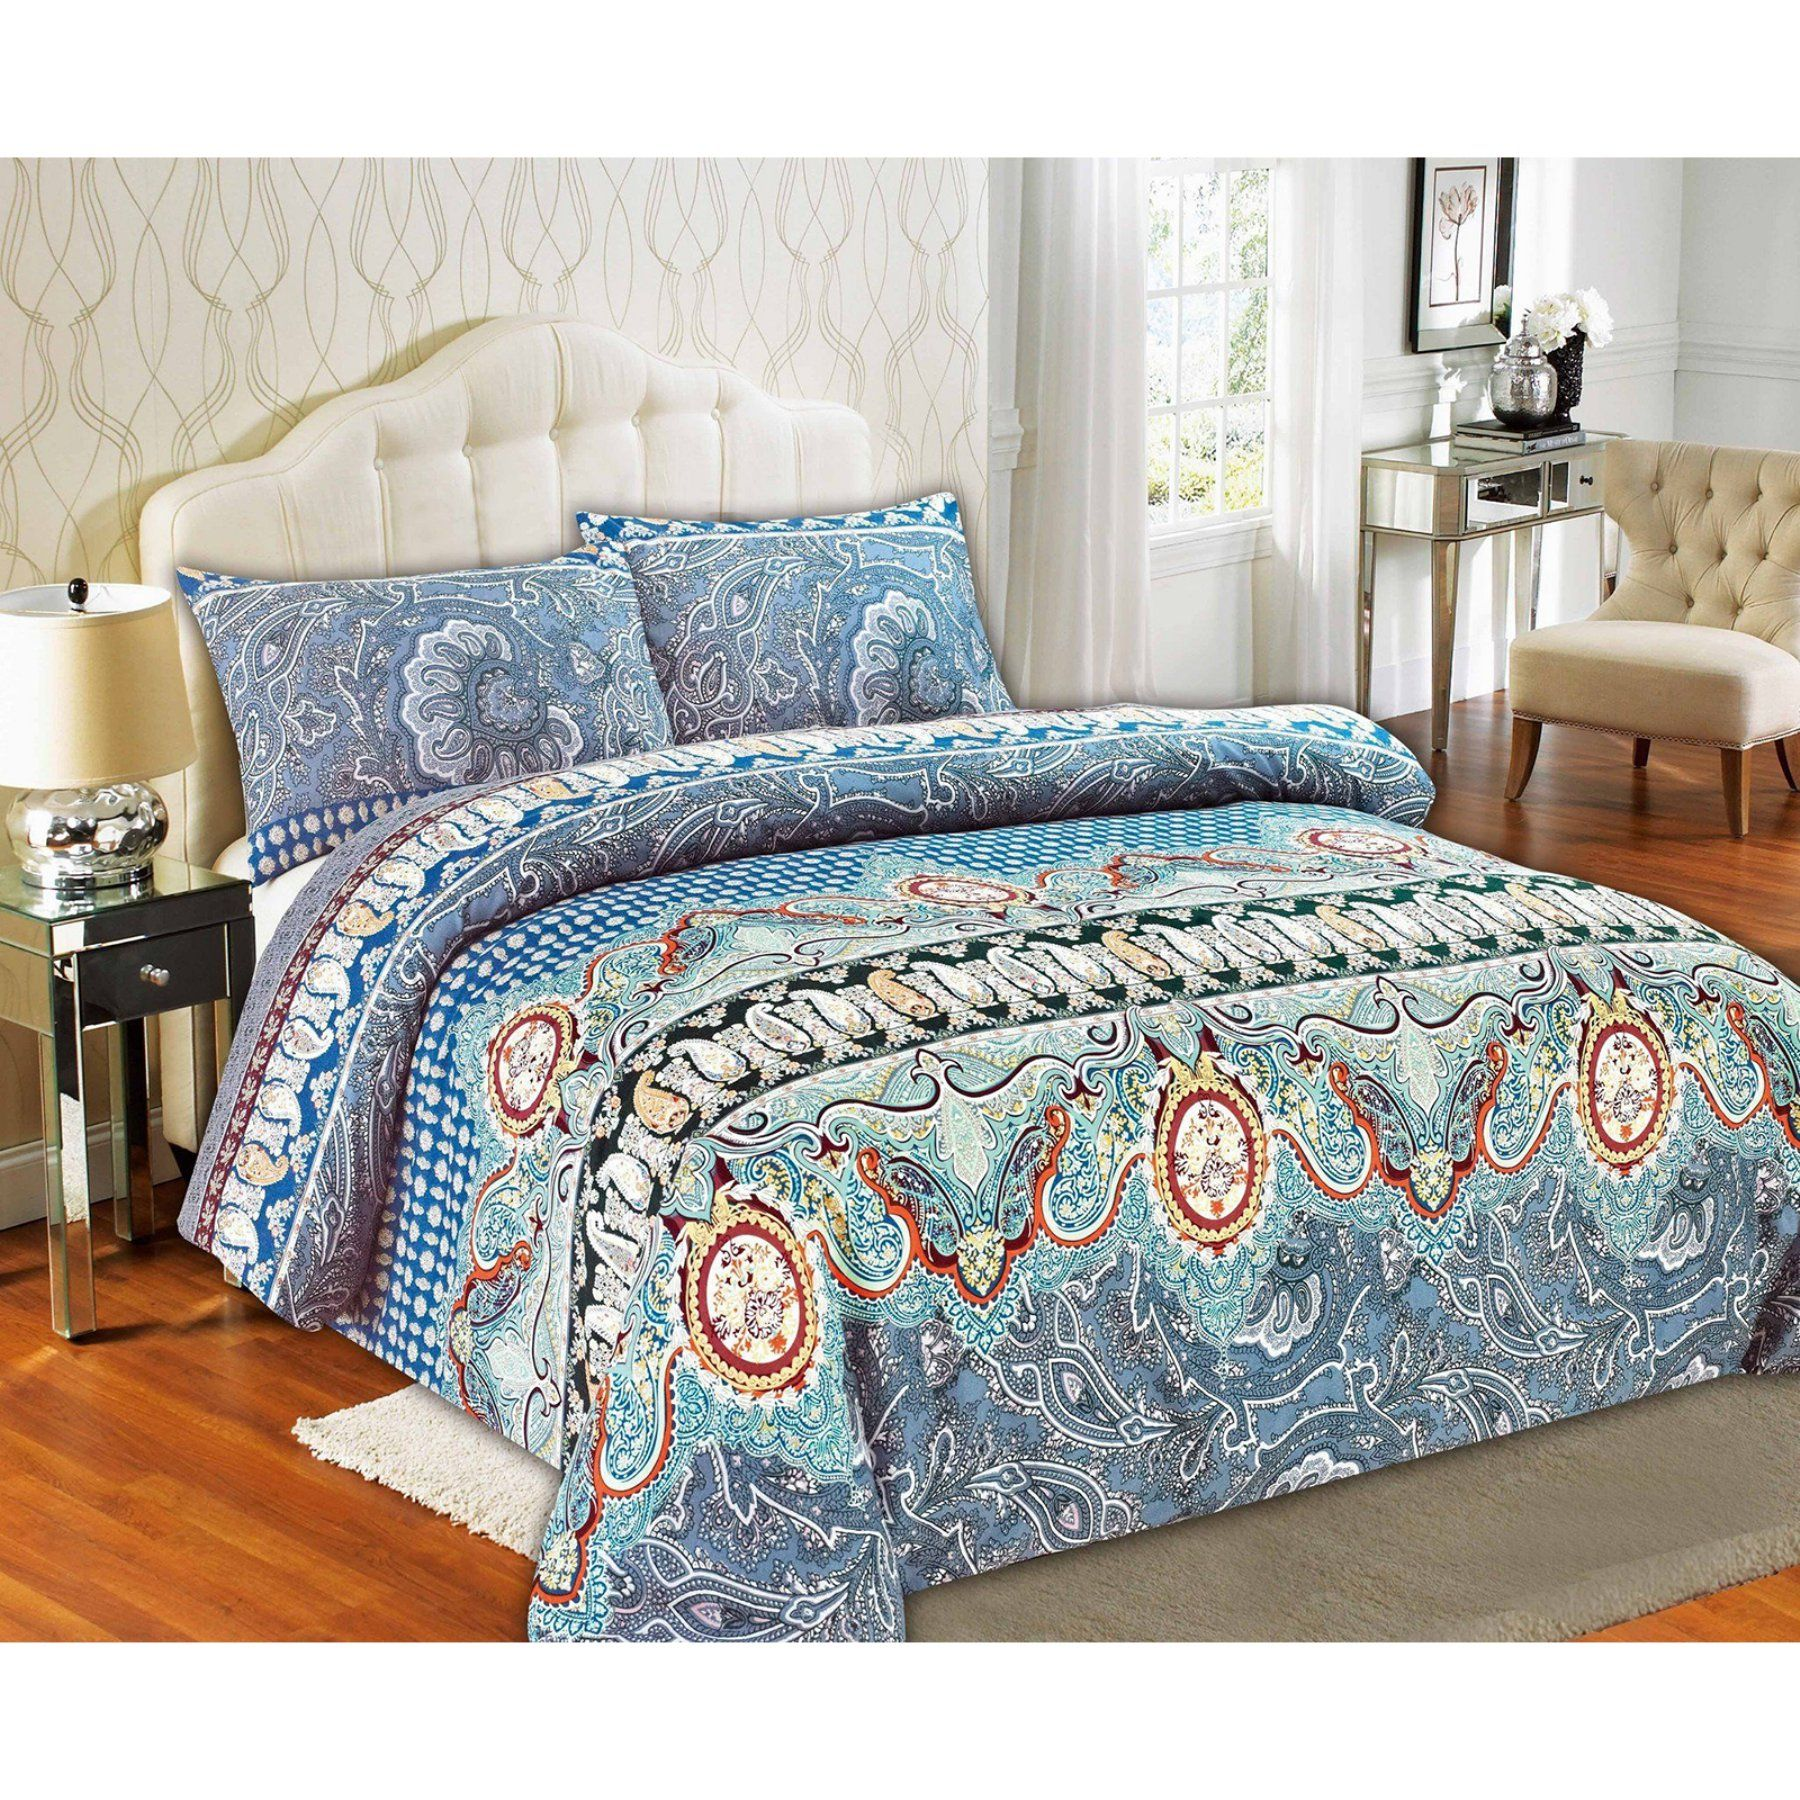 Paisley Monarch Duvet Cover Set By Tache Home Fashion